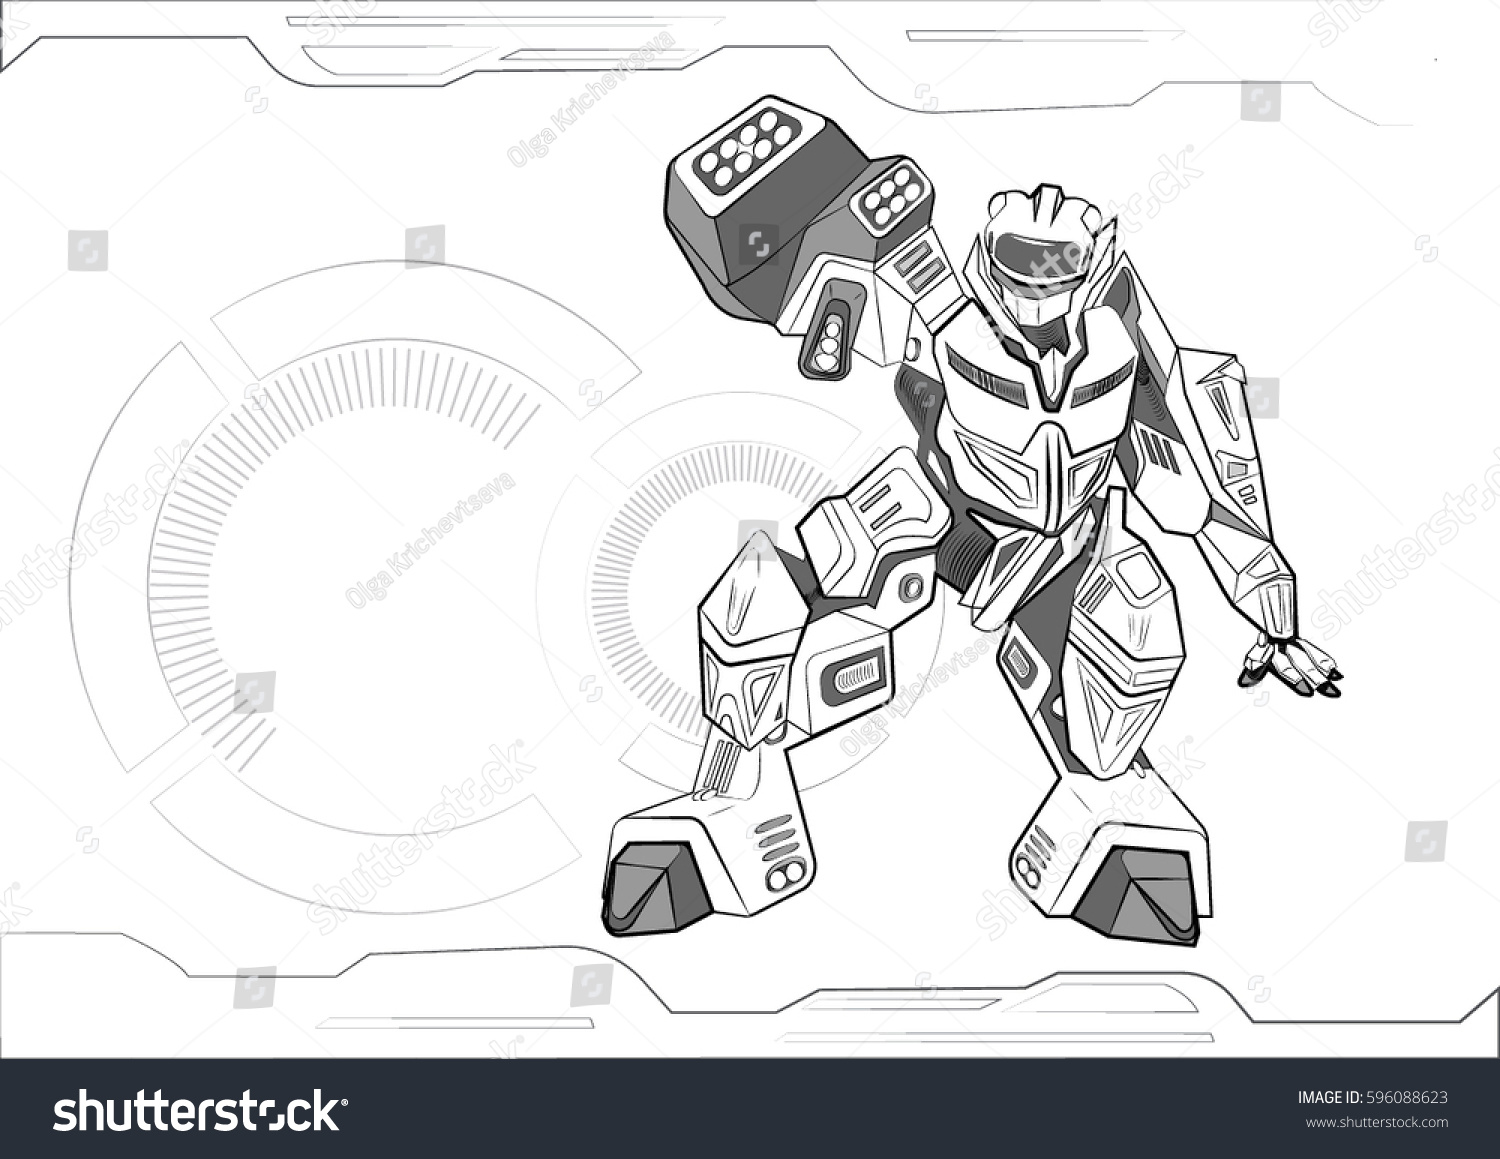 Coloring book with electronic mechanisms contour vector illustration ...